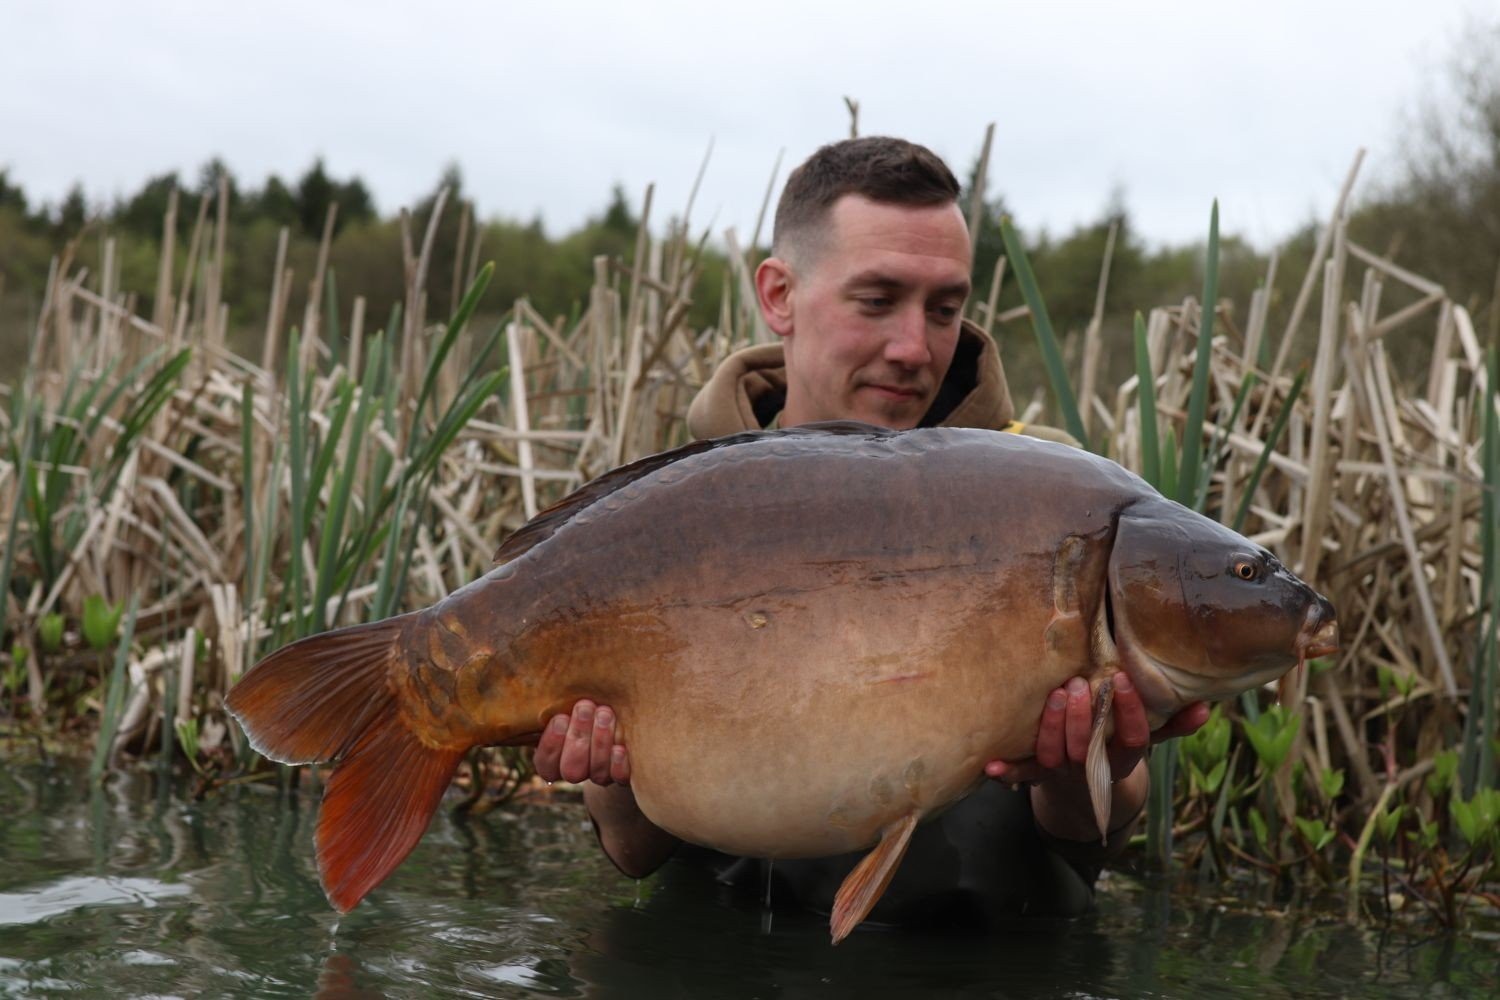 33lb 04oz  caught on Over 5kg of 18mm boilies